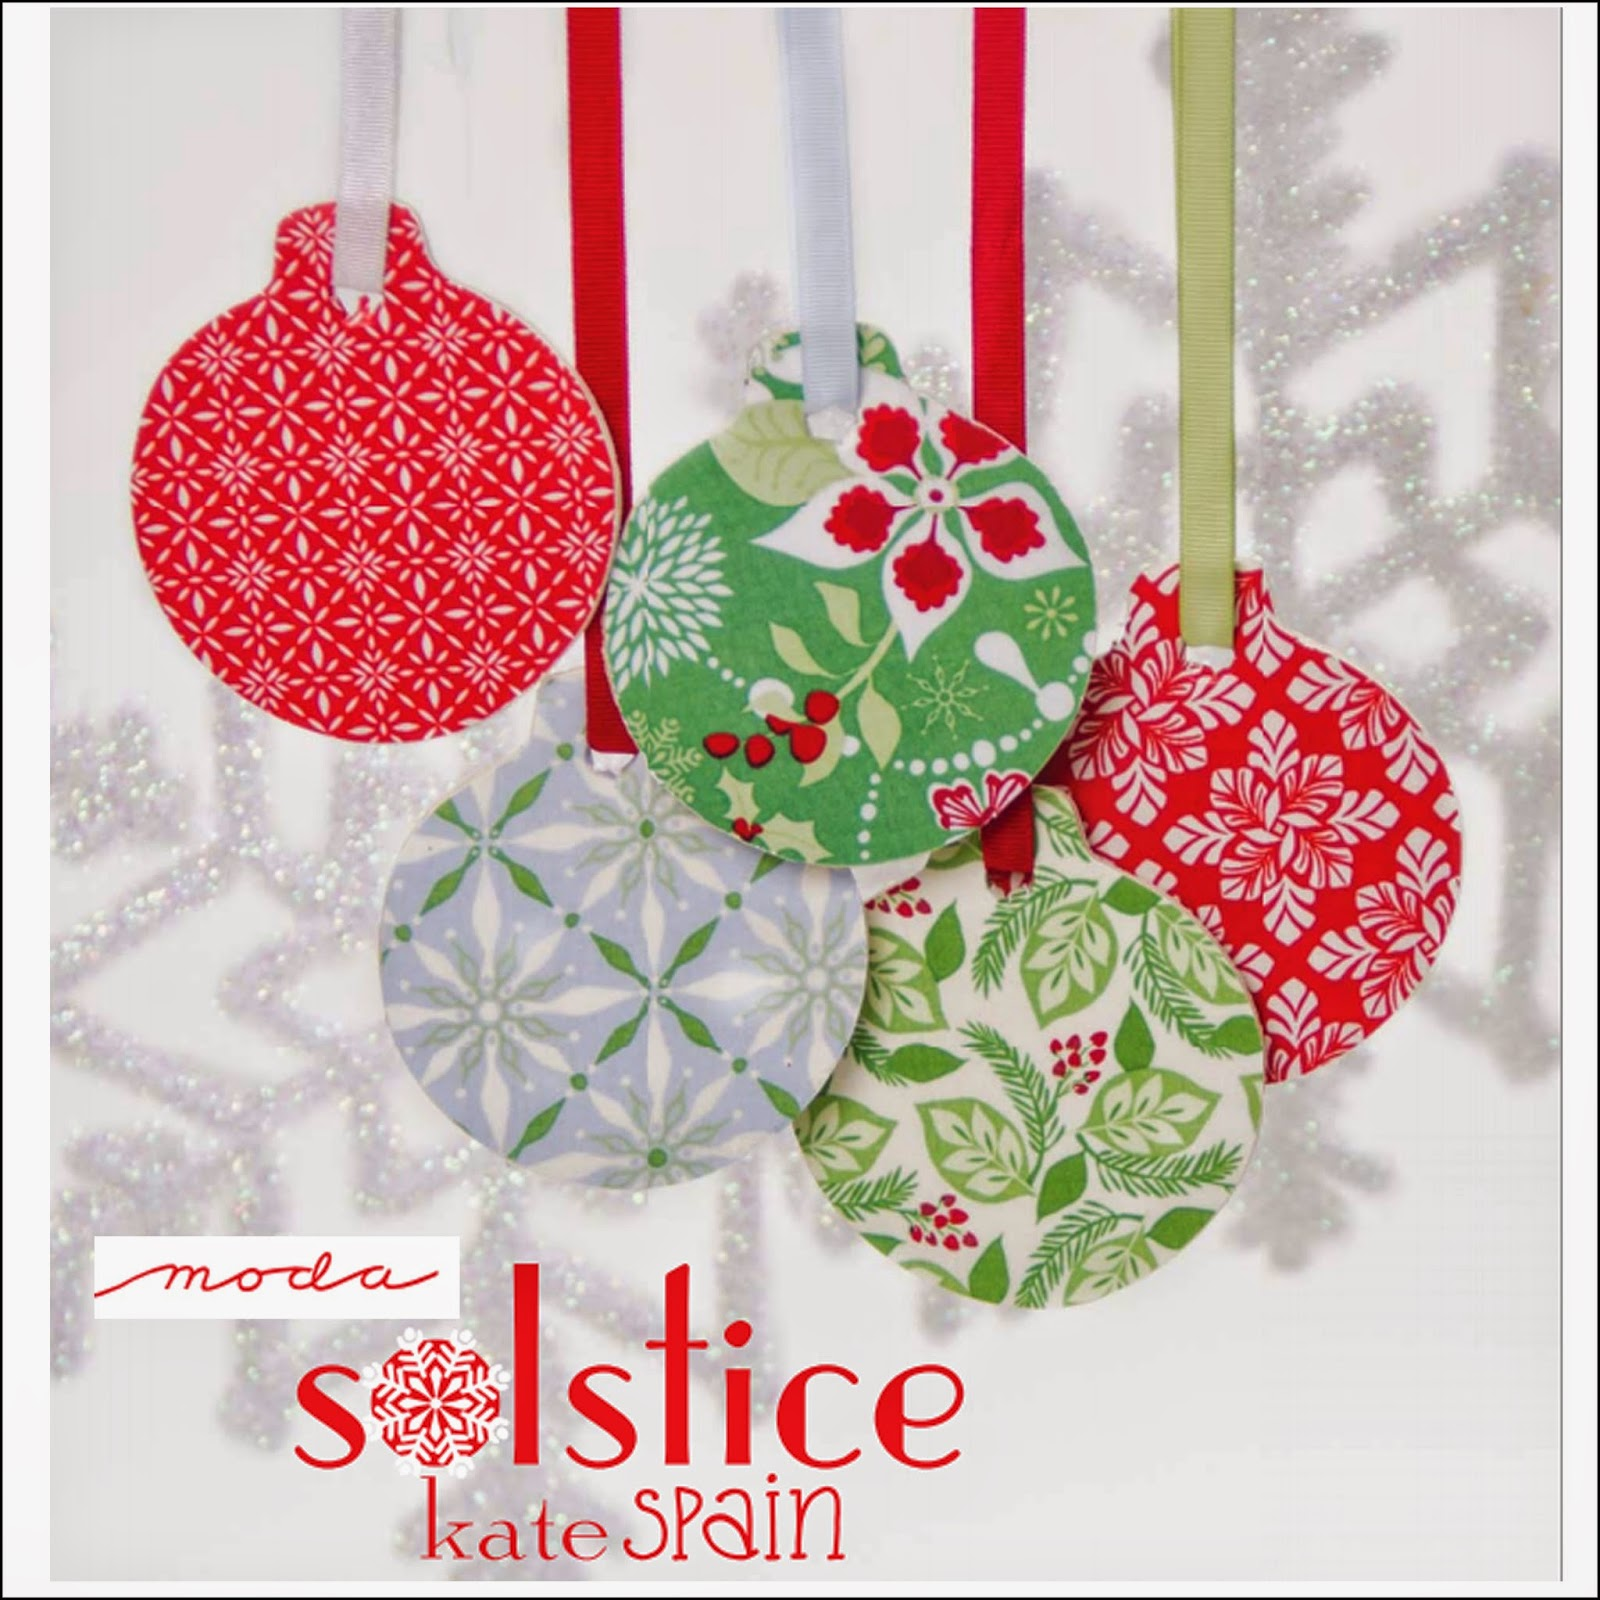 Moda SOLSTICE Christmas Holiday Quilt Fabric by Kate Spain for Moda Fabrics